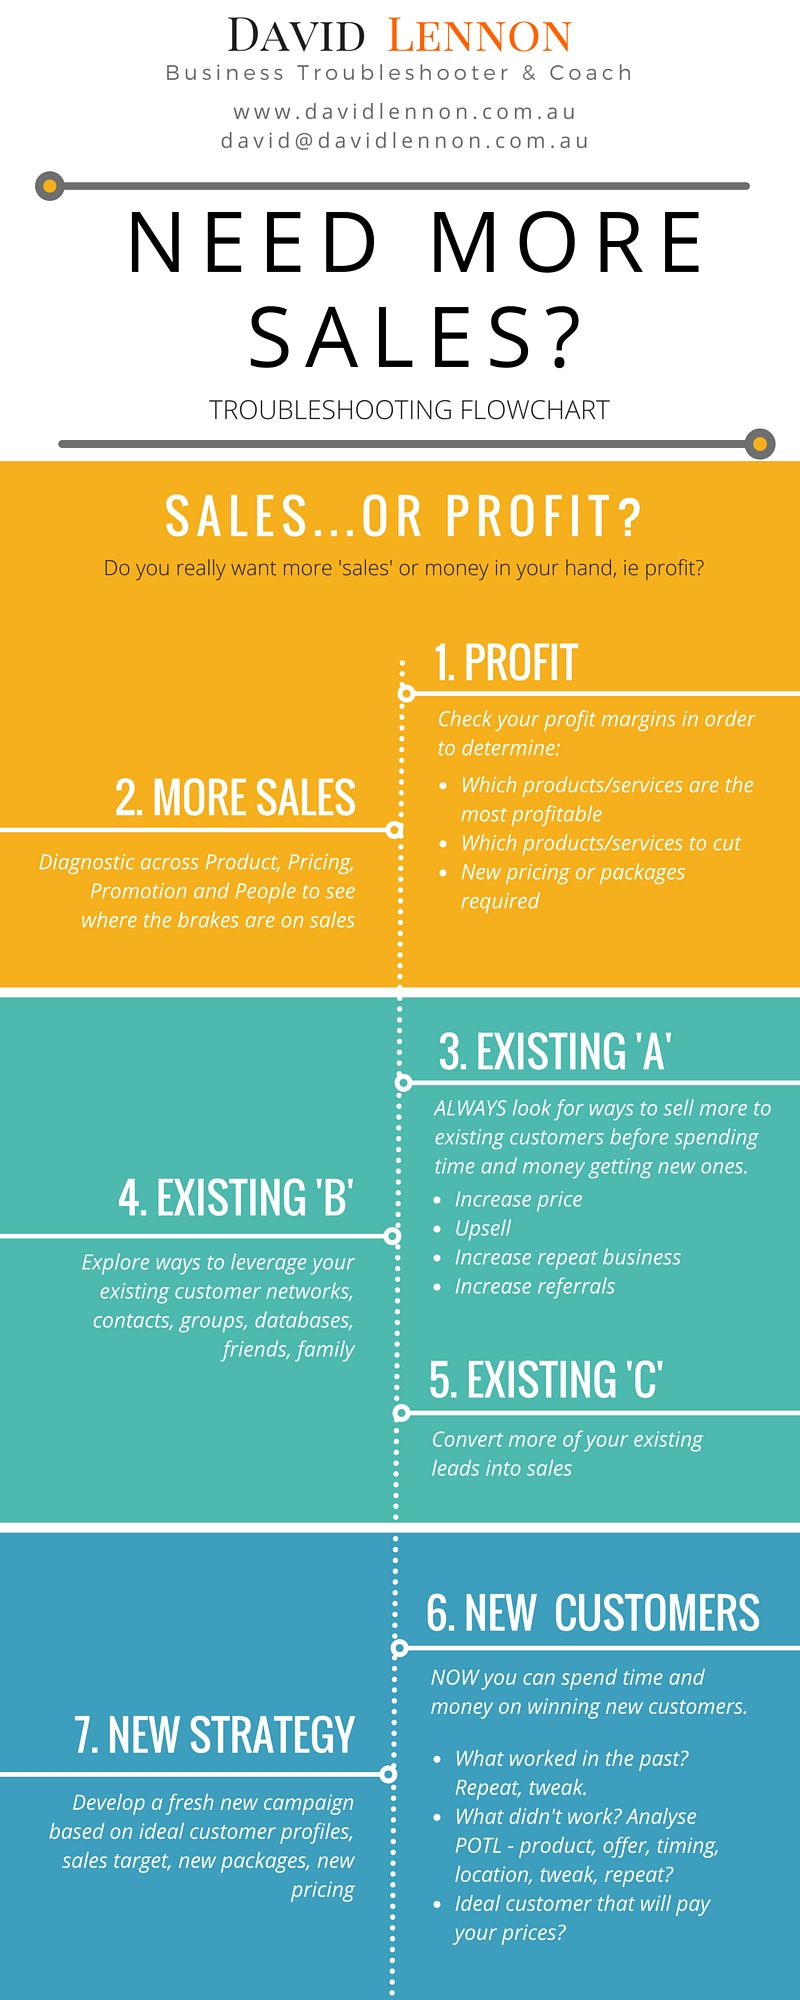 Use this flowchart to help rationalise your thinking when looking for more sales.